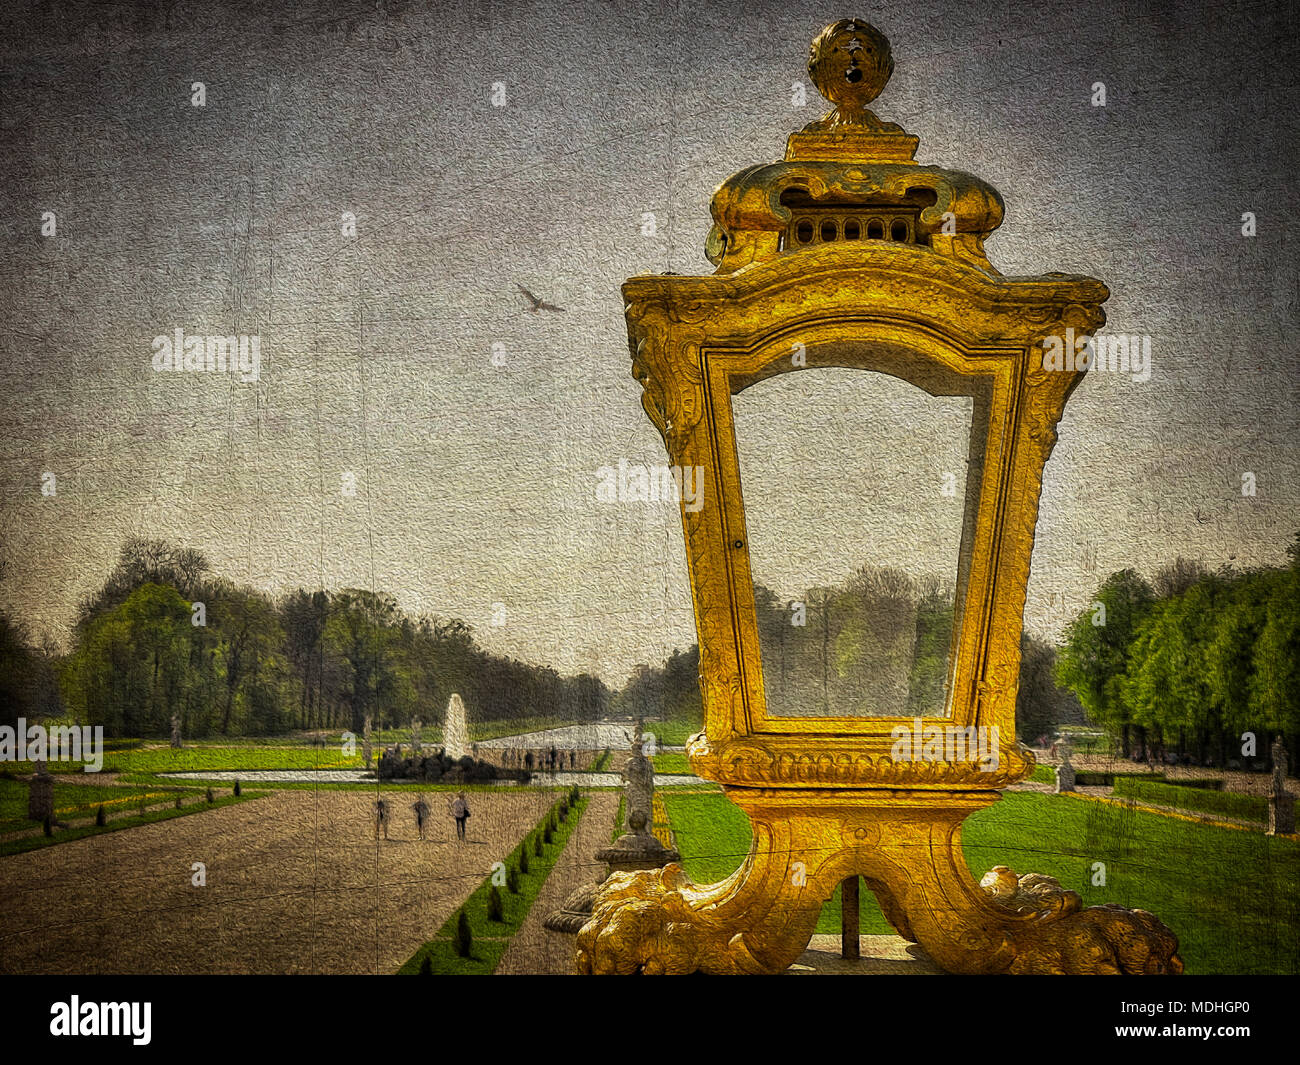 DIGITAL ART: Nymphenburg Castle Park, Munich, Germany - Stock Image